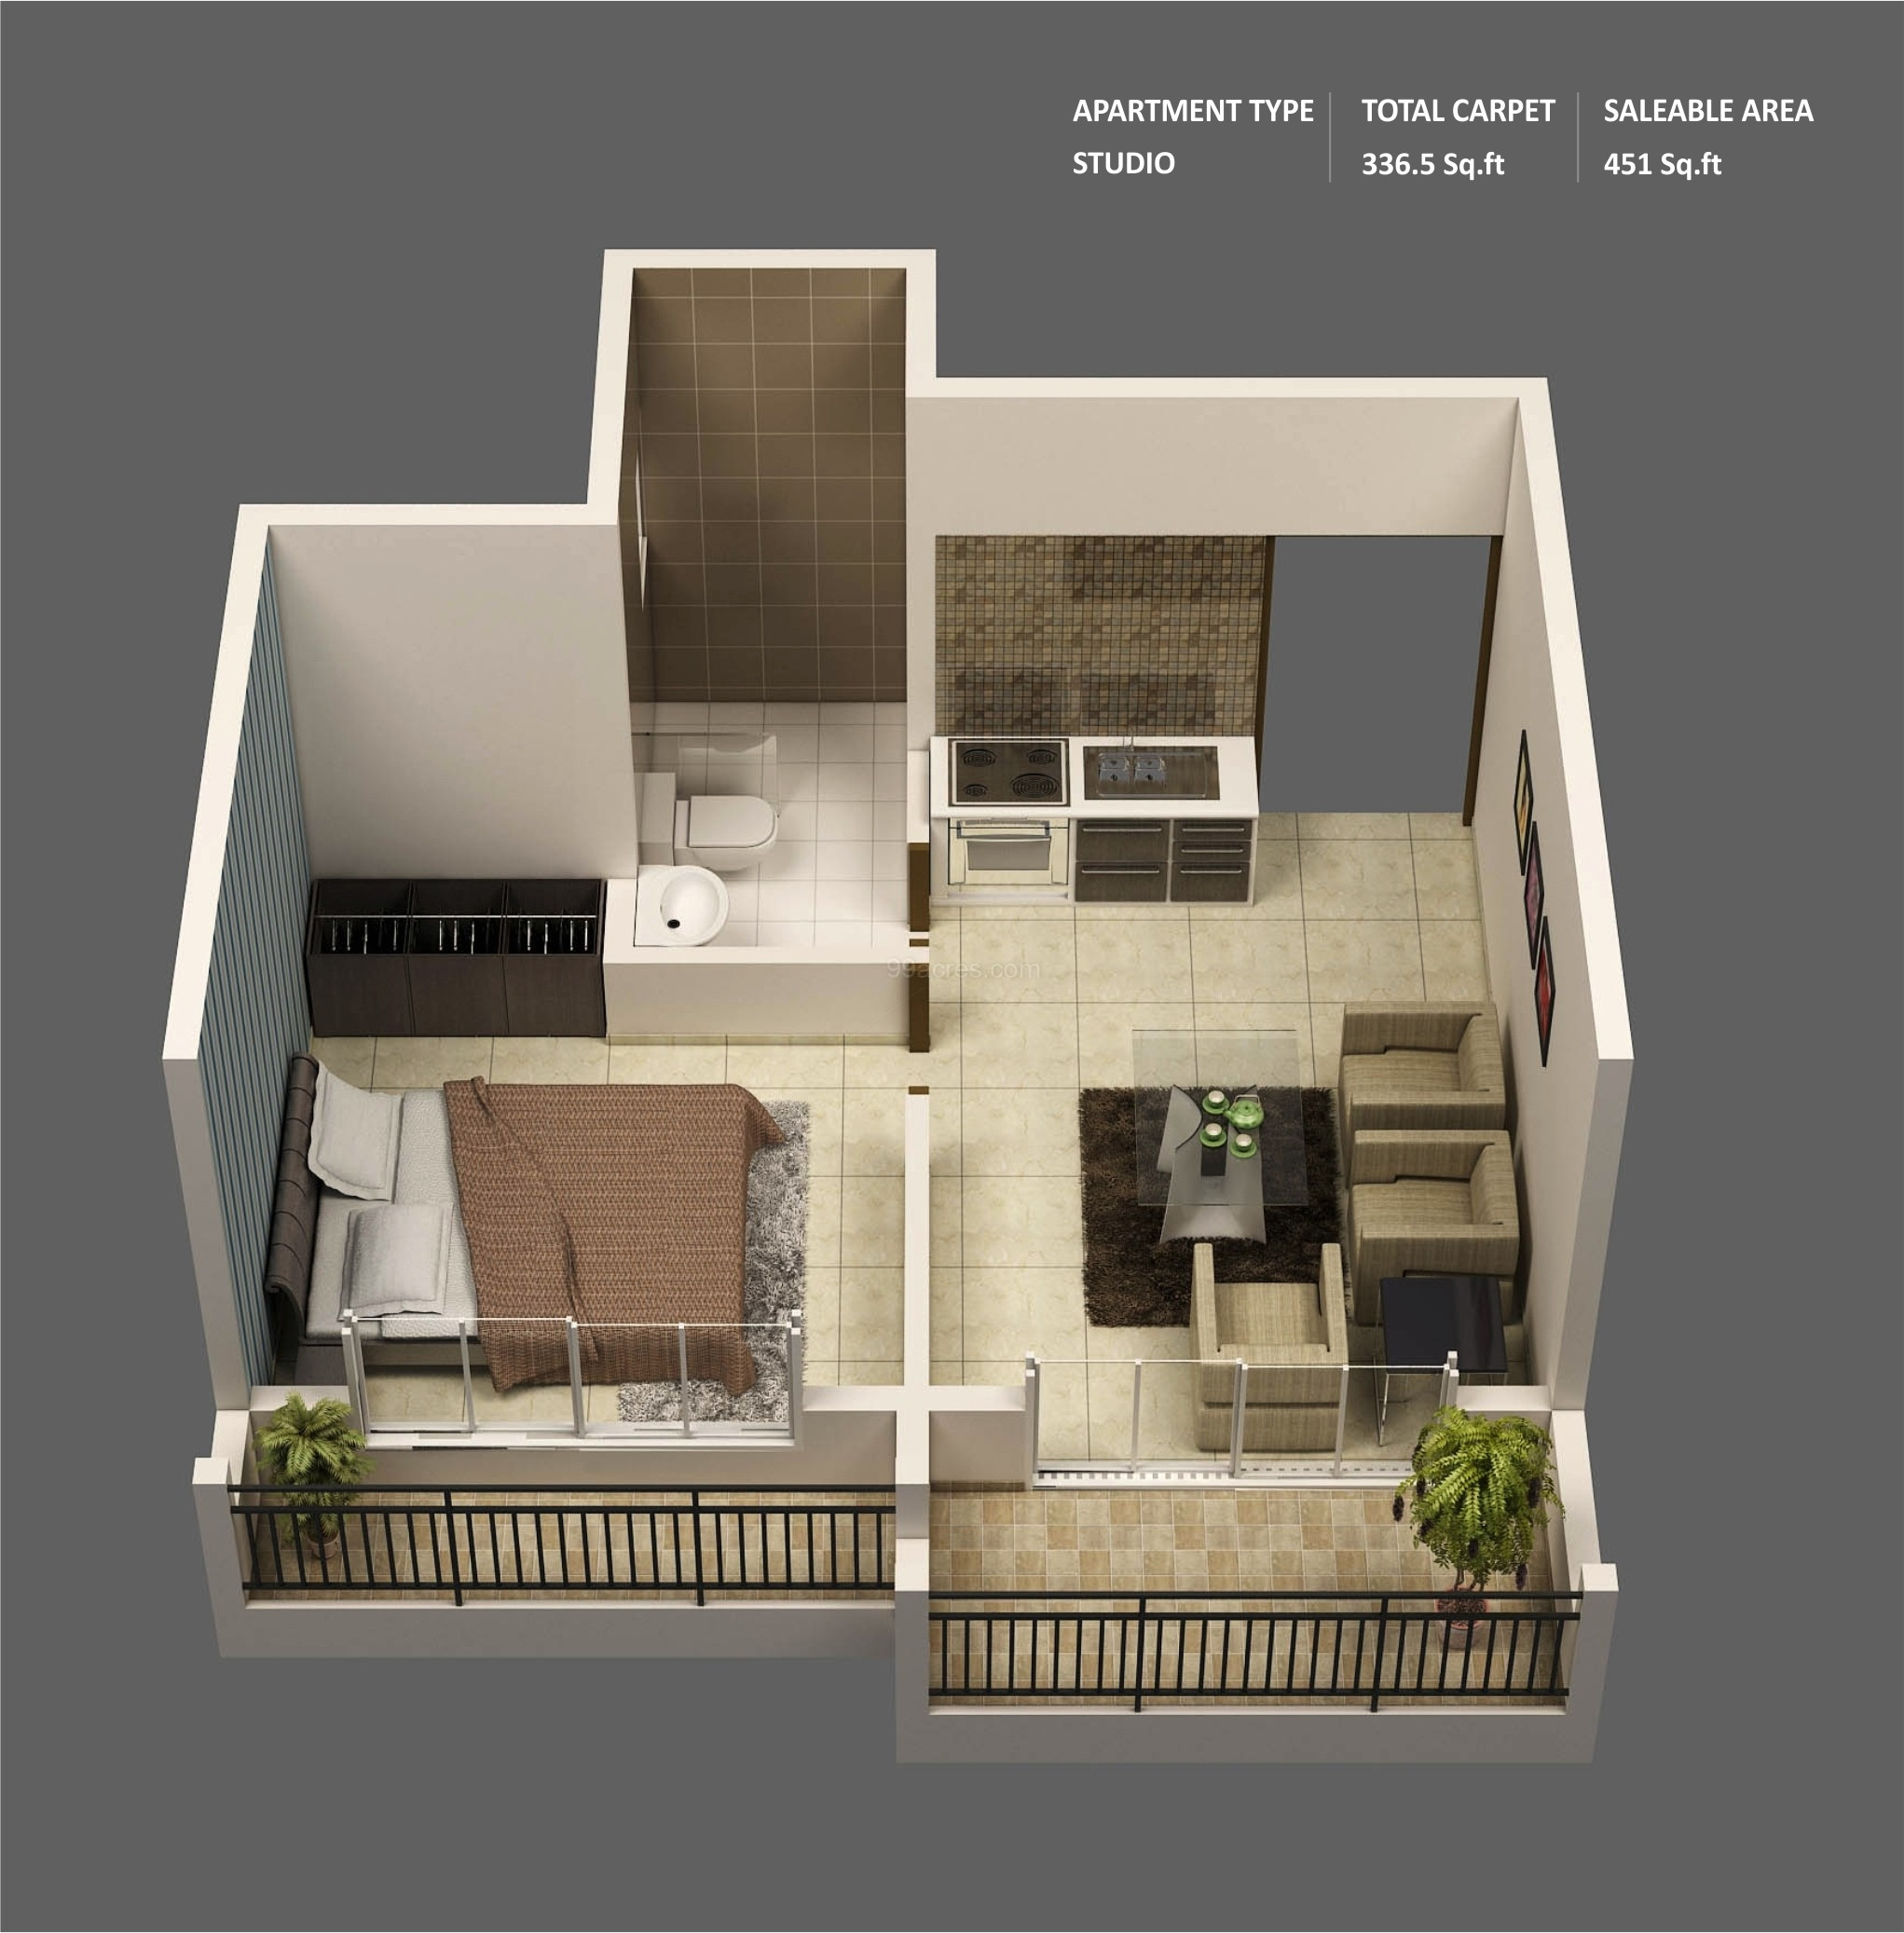 http://cdn.home-designing.com/wp-content/uploads/2014/06/One-Bedroom-Efficiency-in-Mumbai.jpg